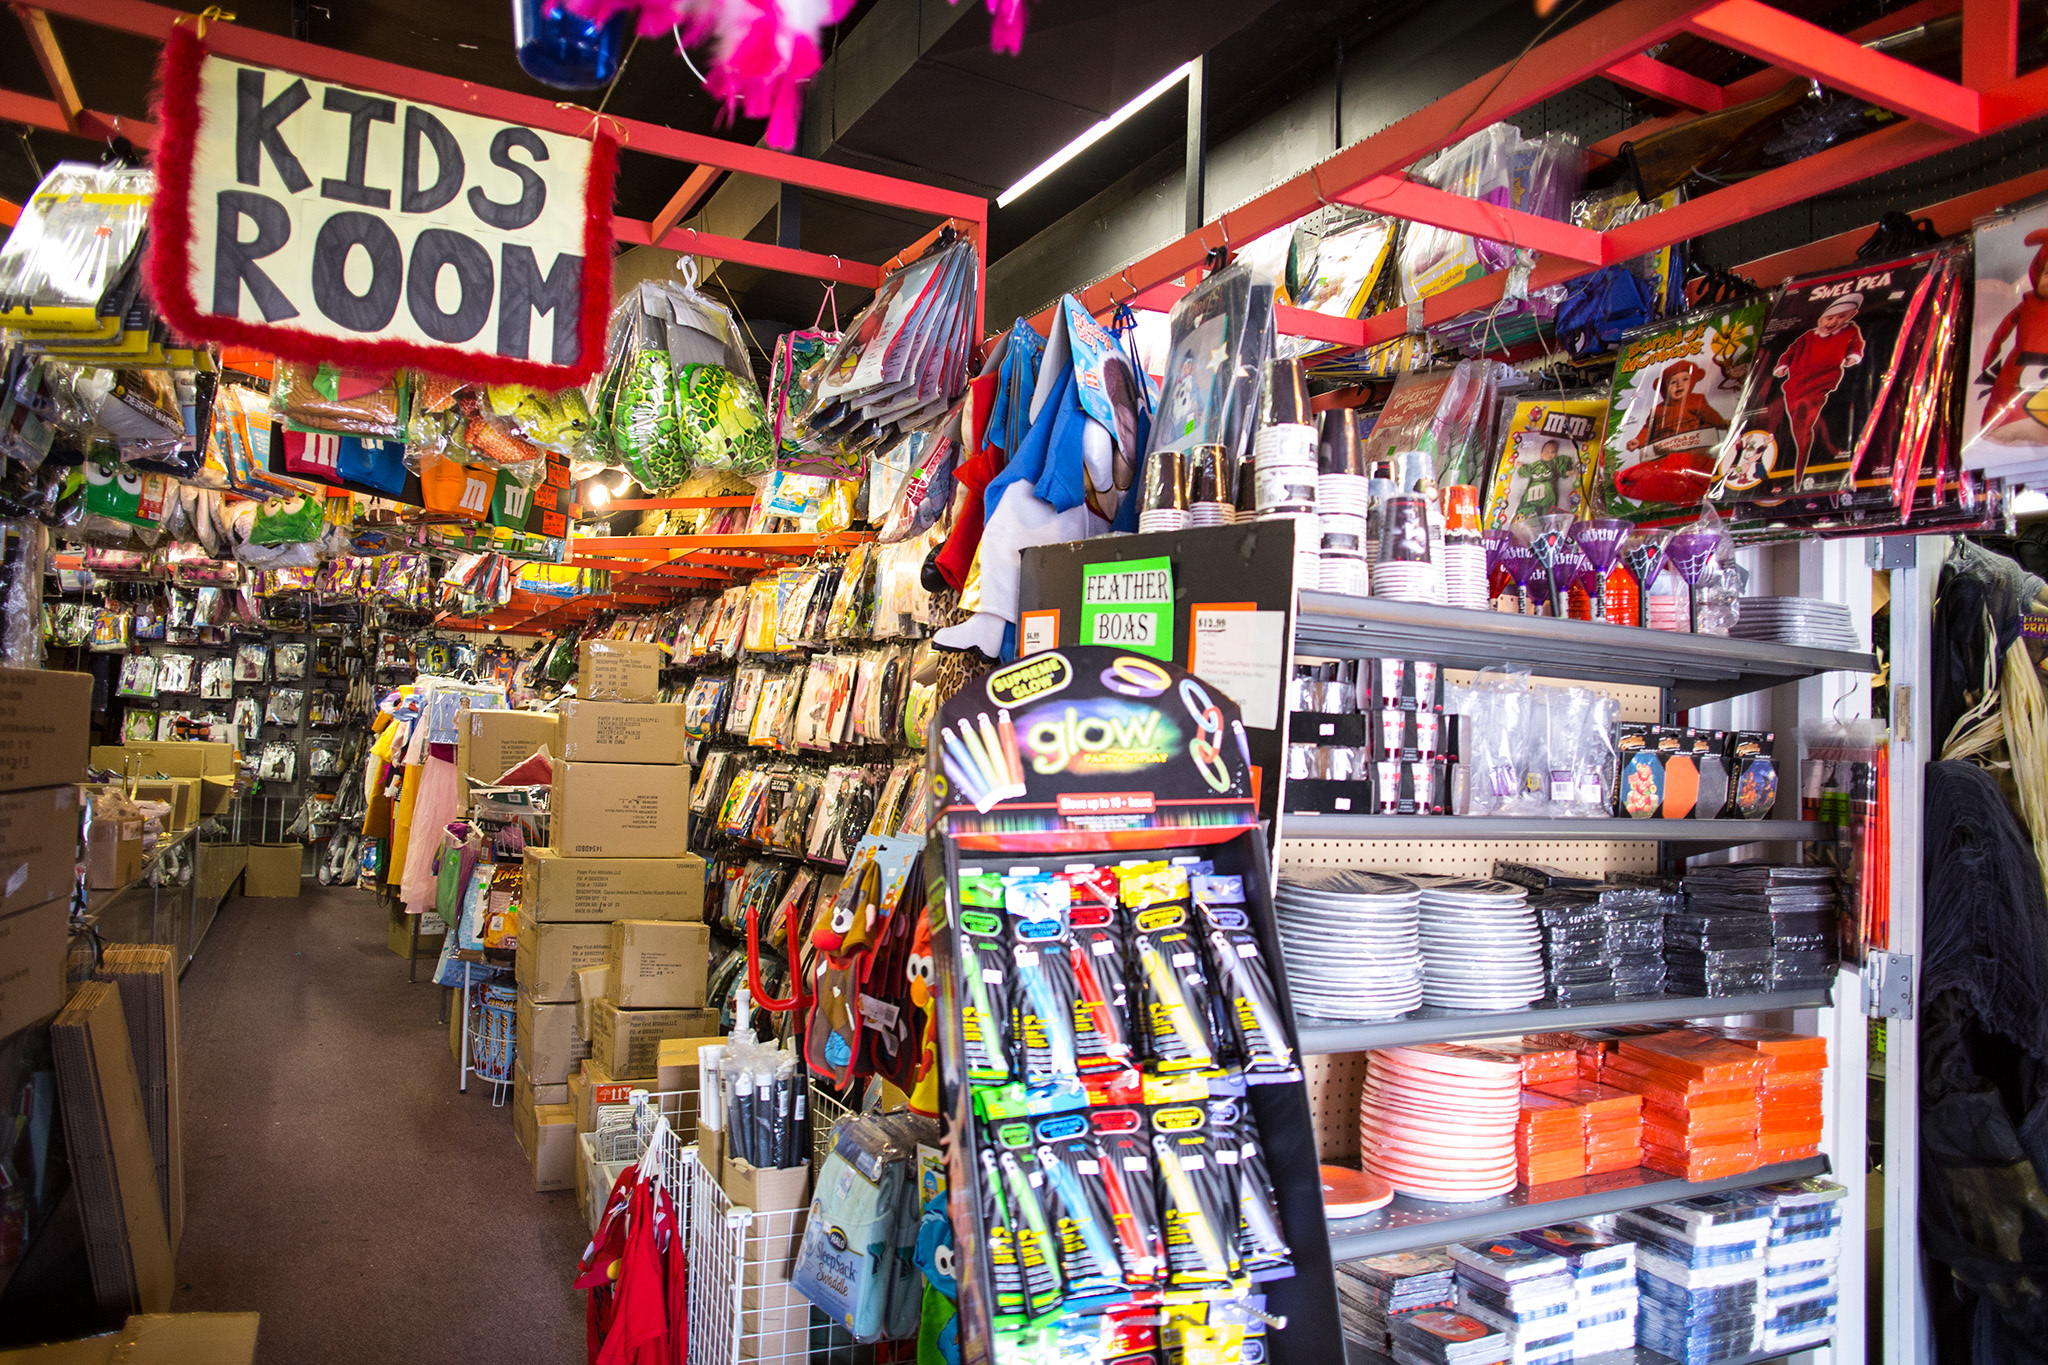 Halloween stores for adults and kids for costumes and more